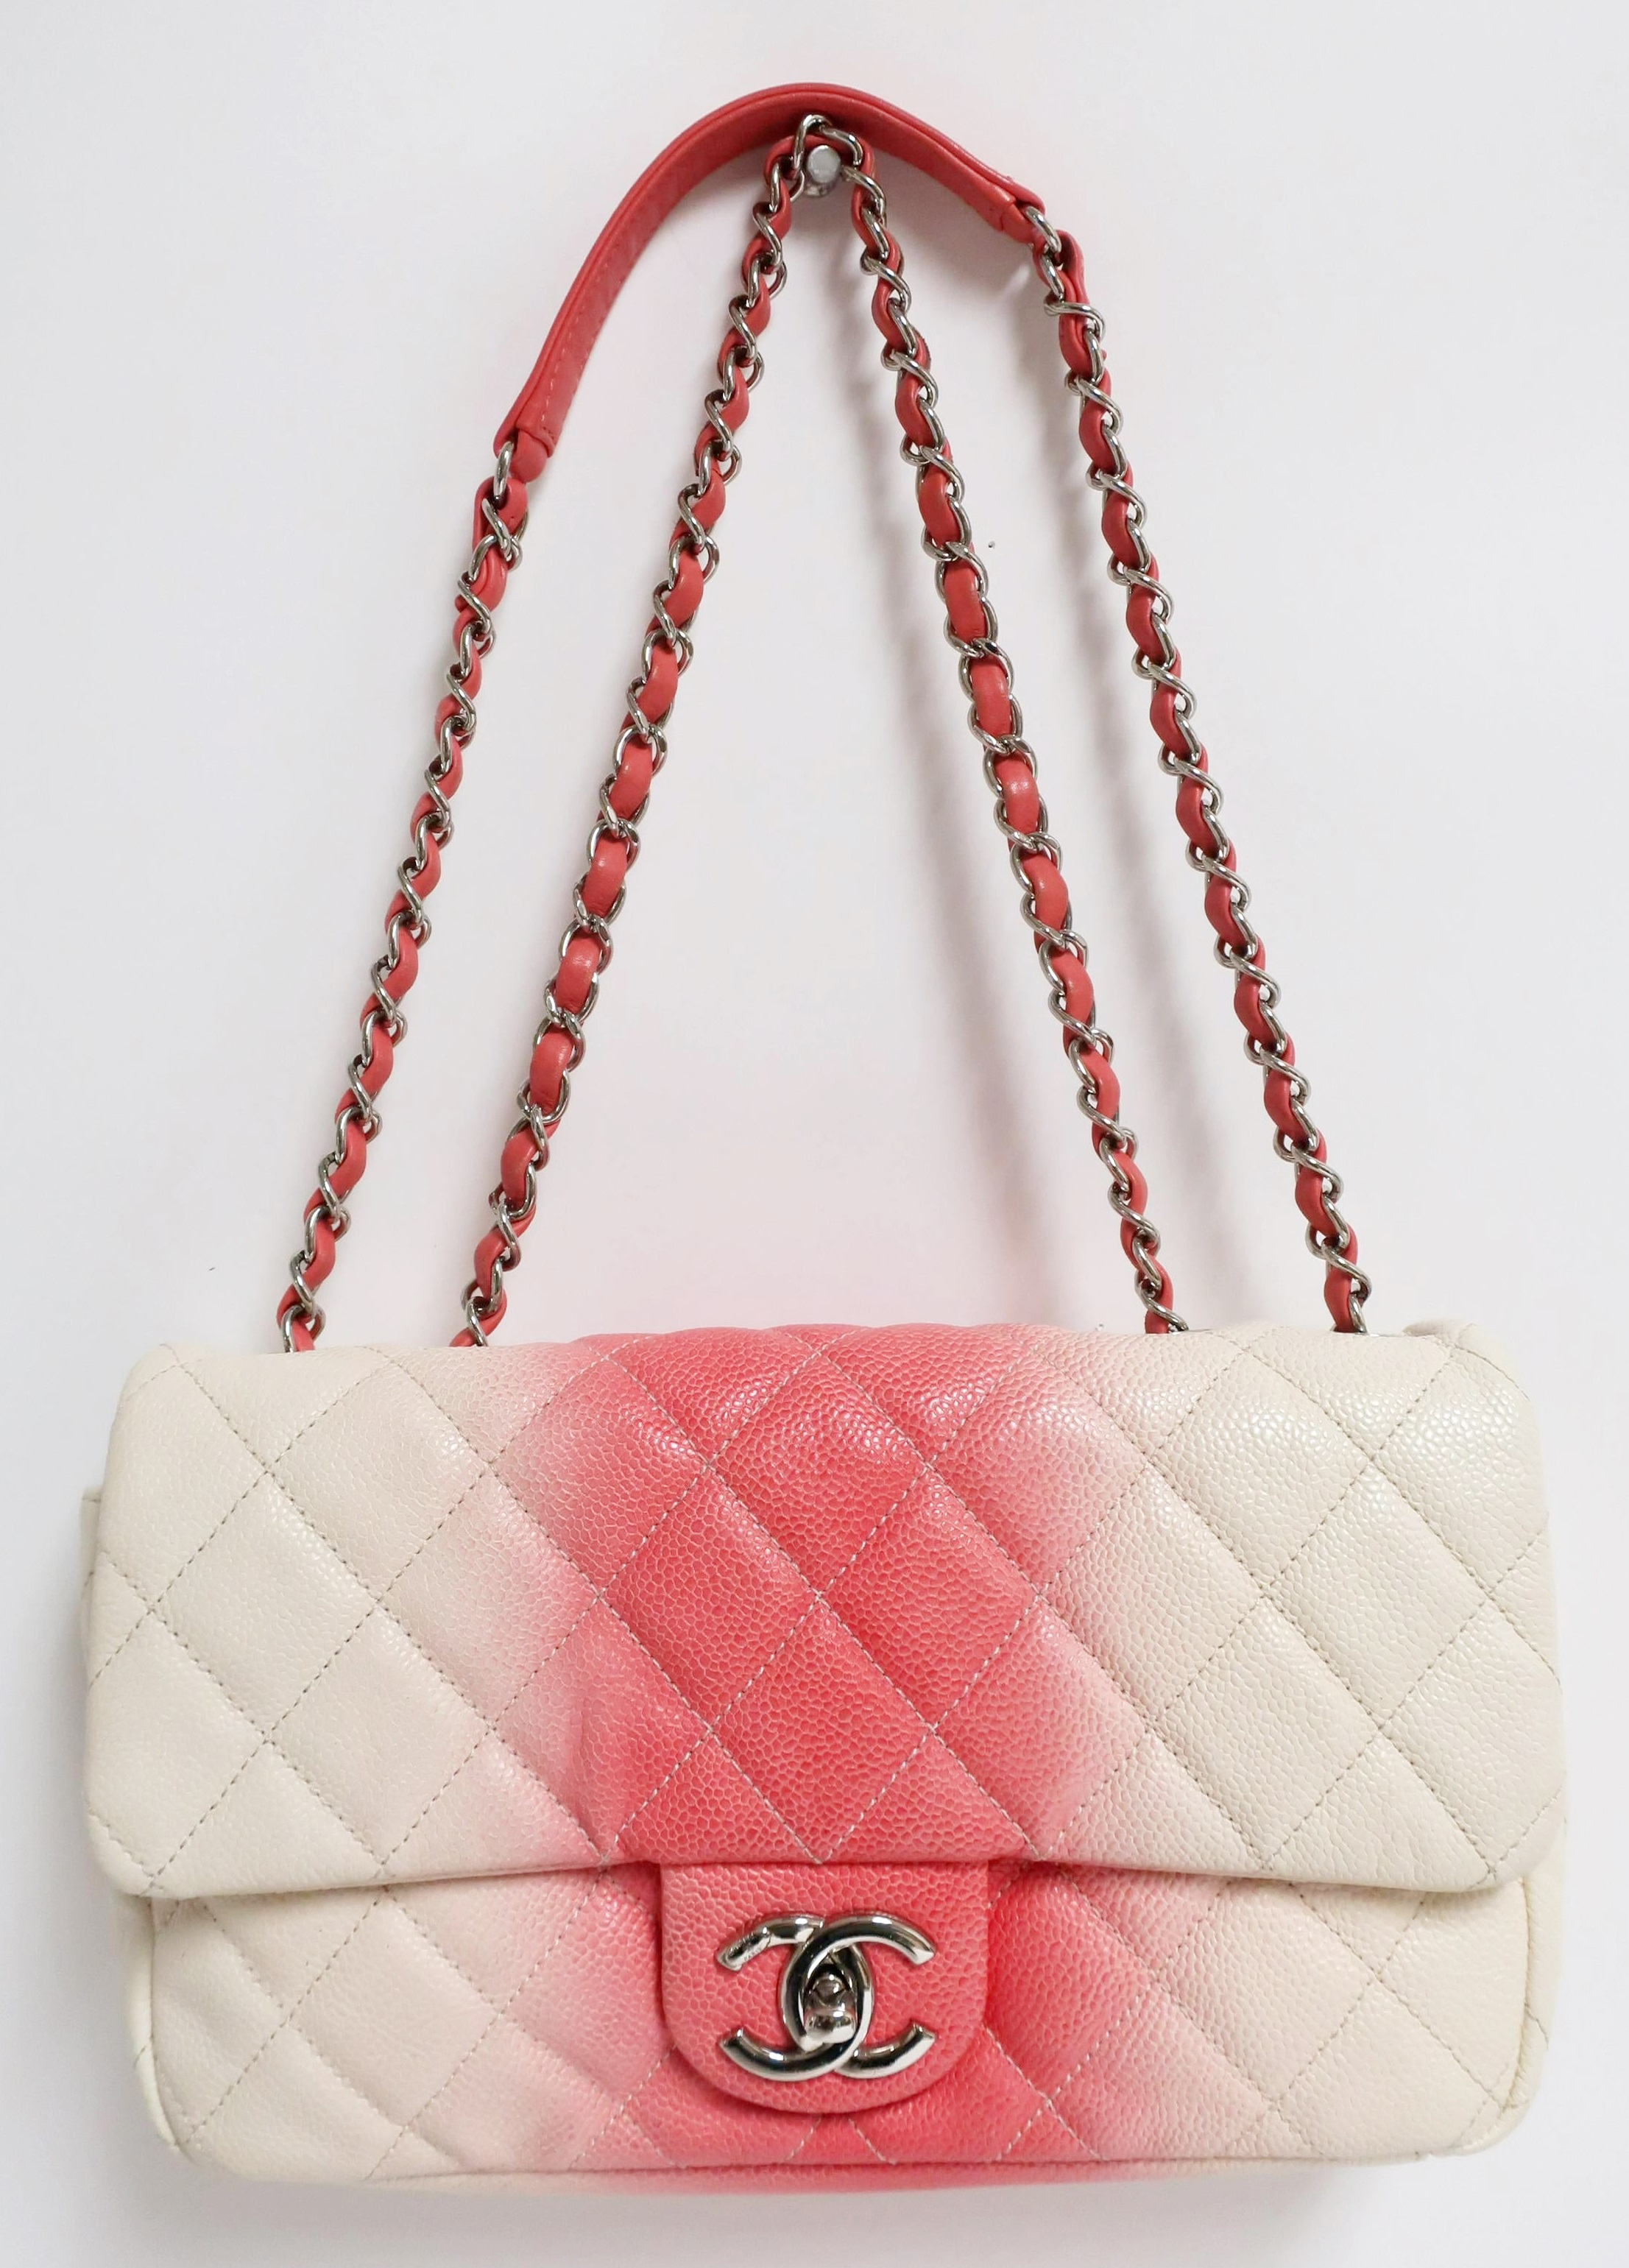 Chanel Bicolor East West Flap Handbag. Sold For $1,950